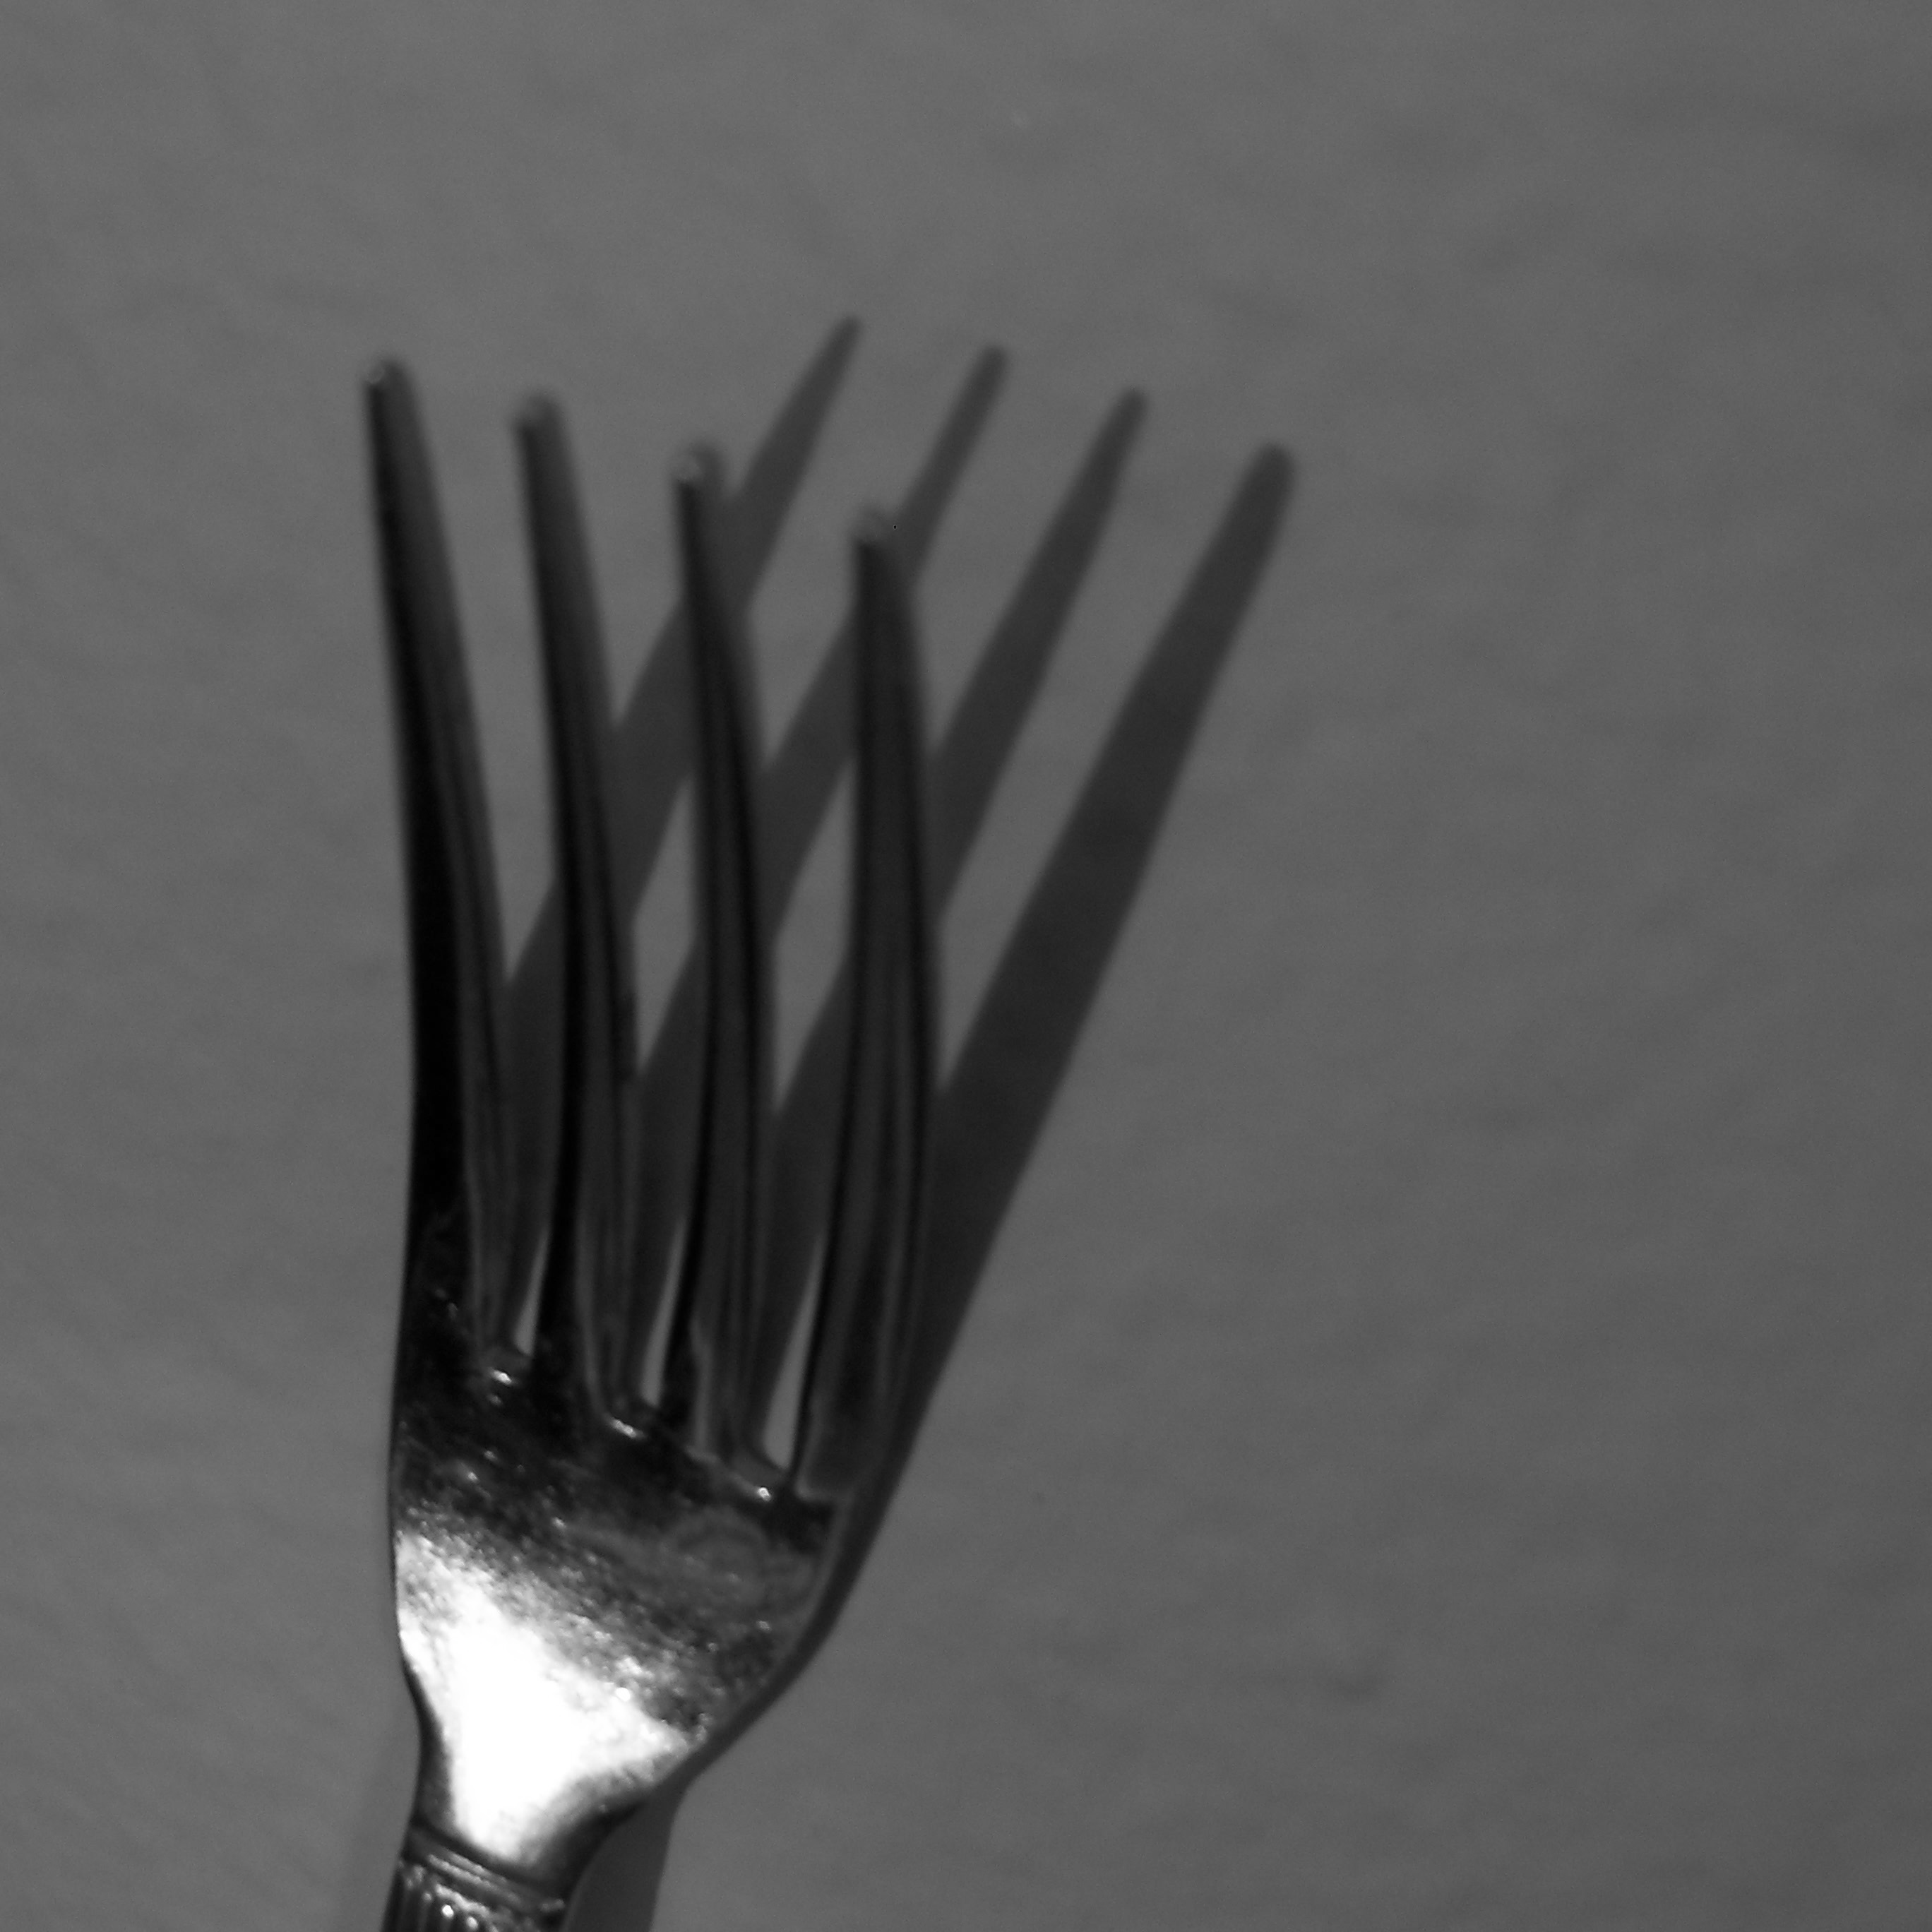 Fork, Abstract, Forms, Patterns, Shadows, HQ Photo